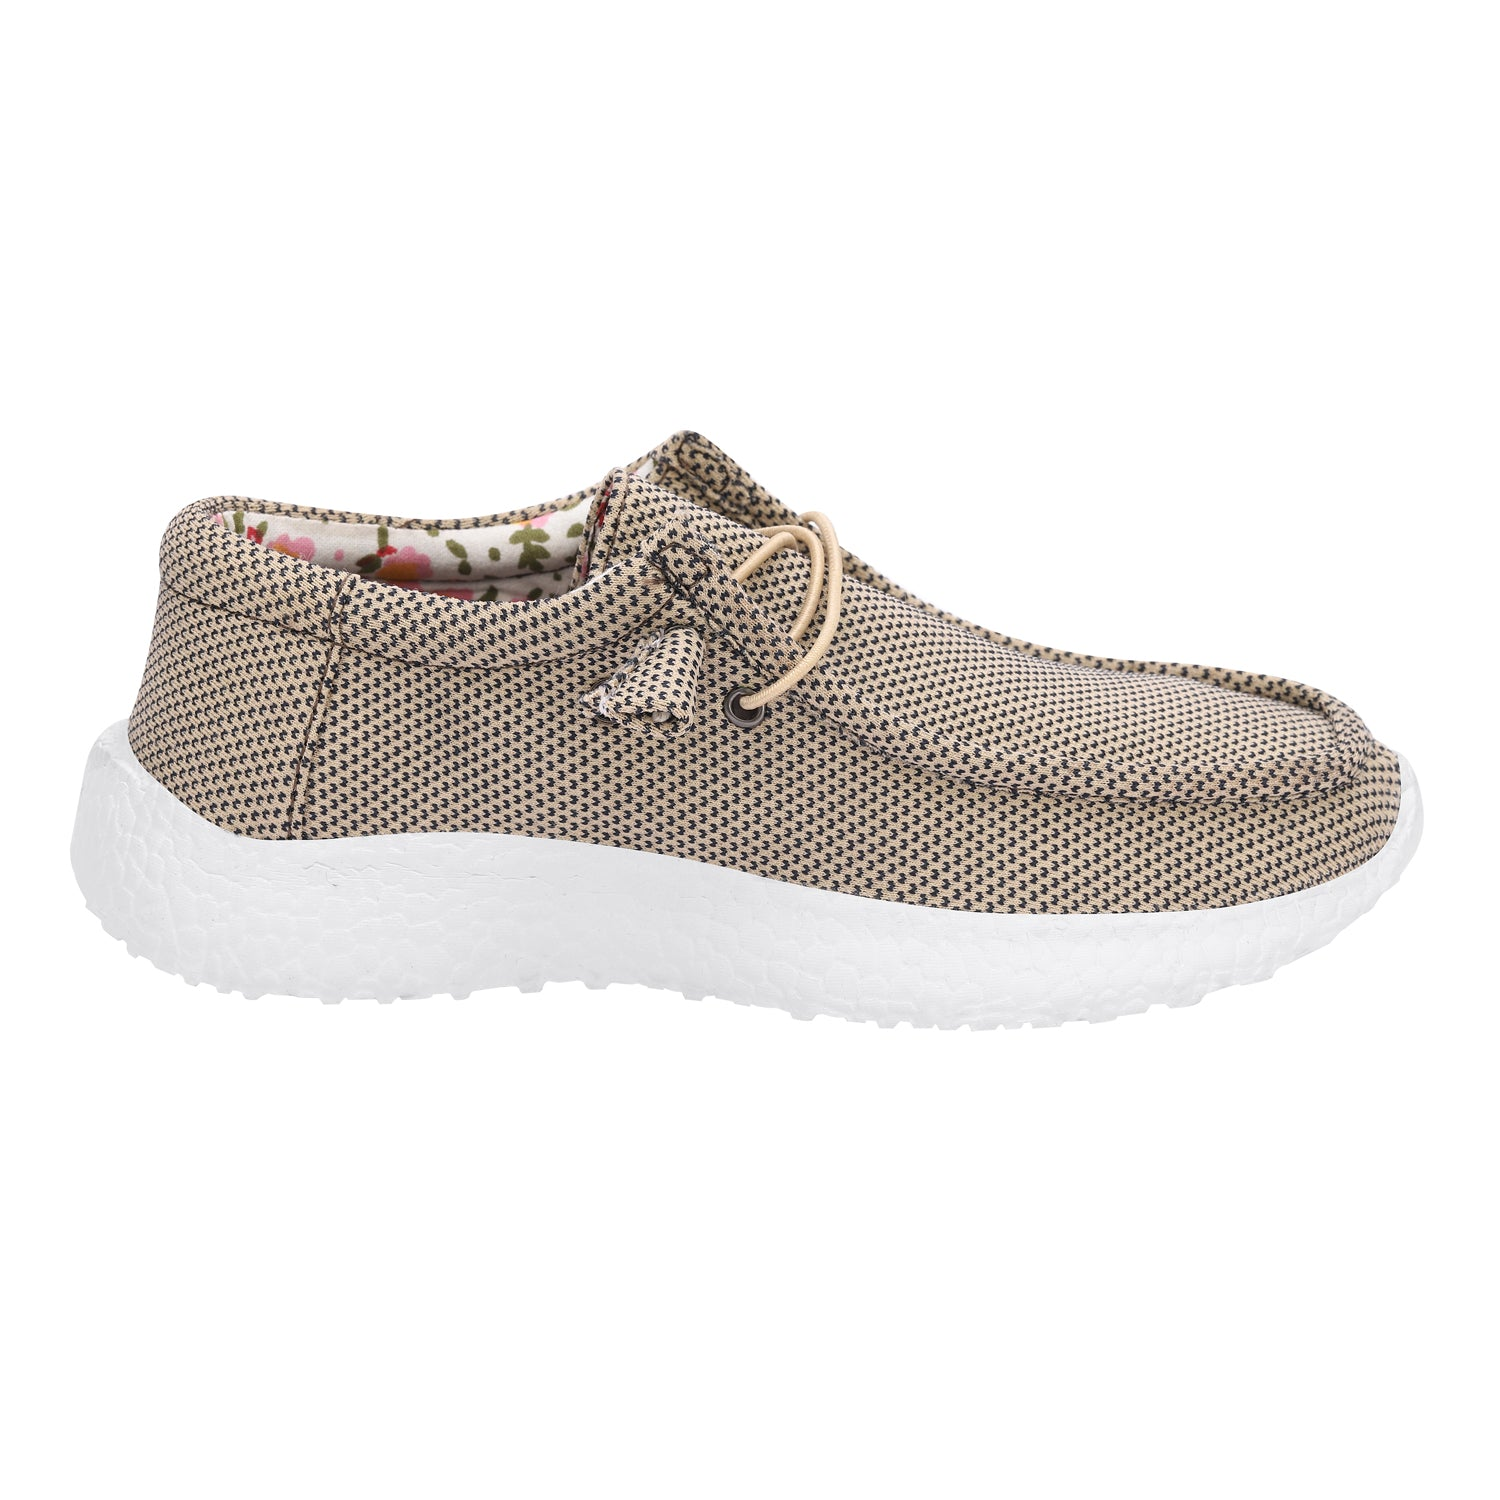 TuffRider Children's Rodeo Knit Shoes - TuffRider - Breeches.com